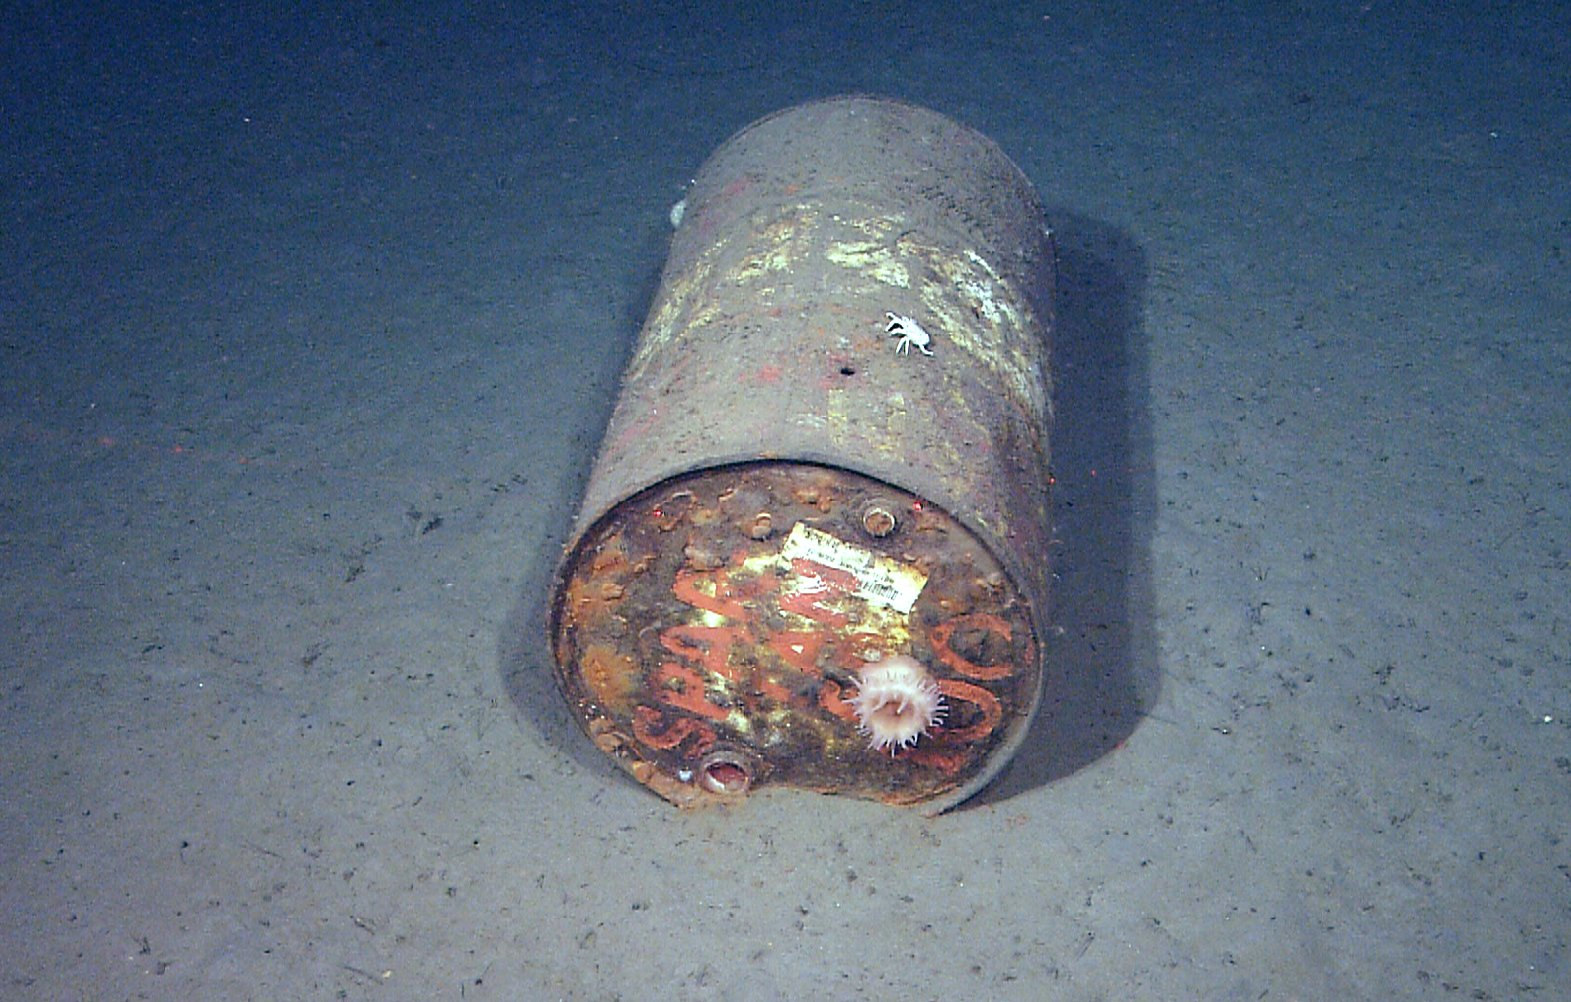 This 55-gallon drum was observed on seafloor 9,488 feet deep in Monterey Canyon. (MBARI)